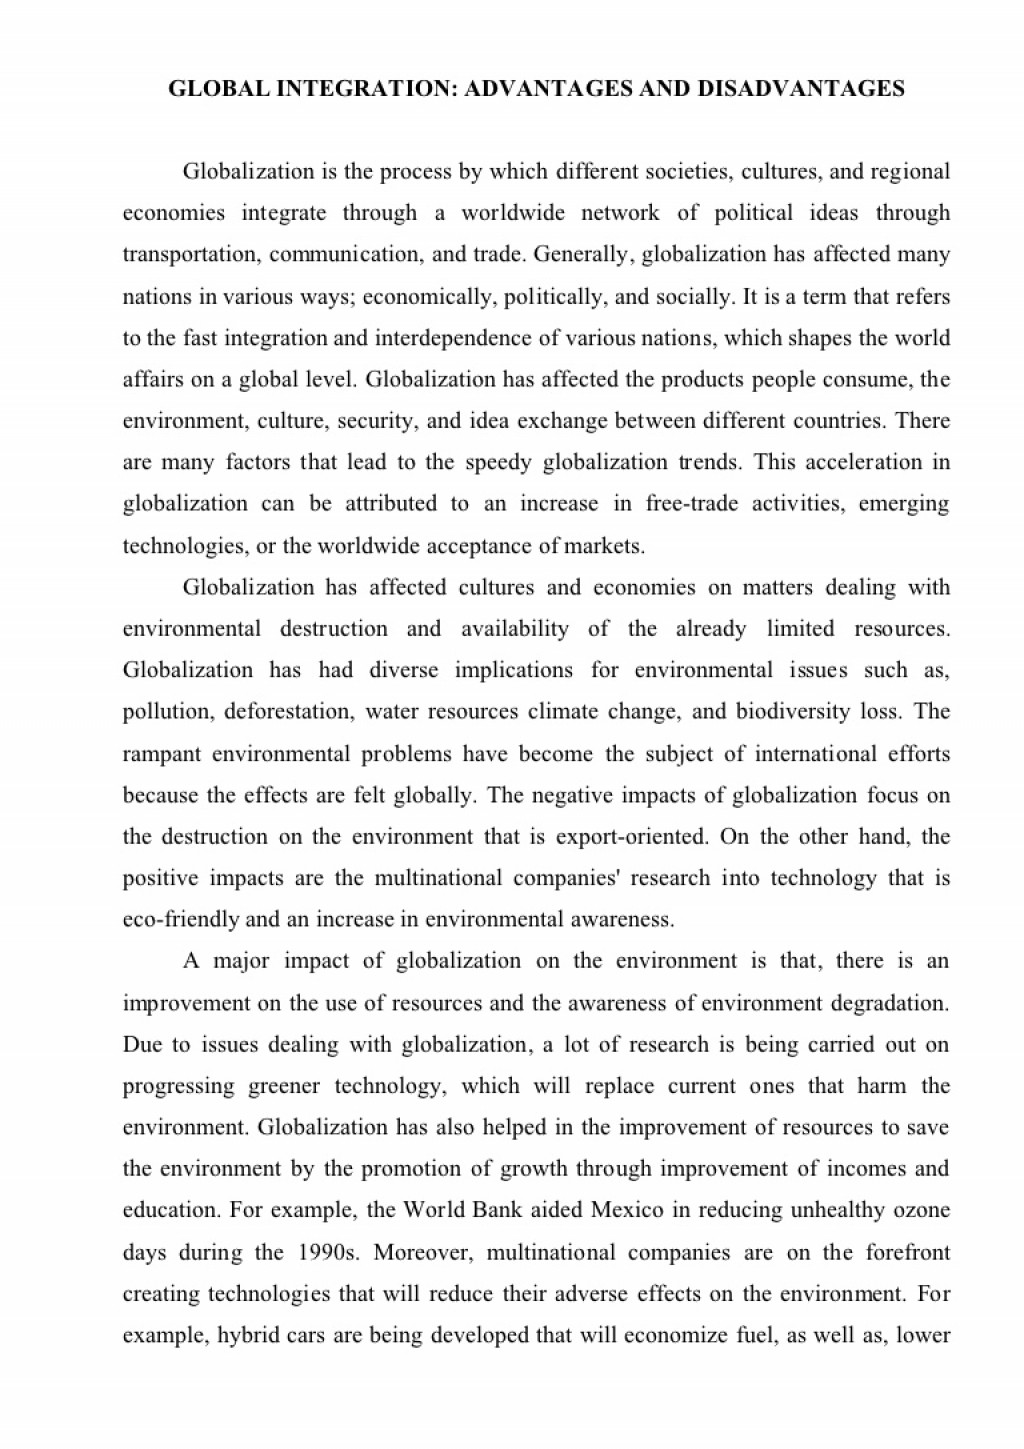 Globalization Is A Good Or Bad Thing Essay